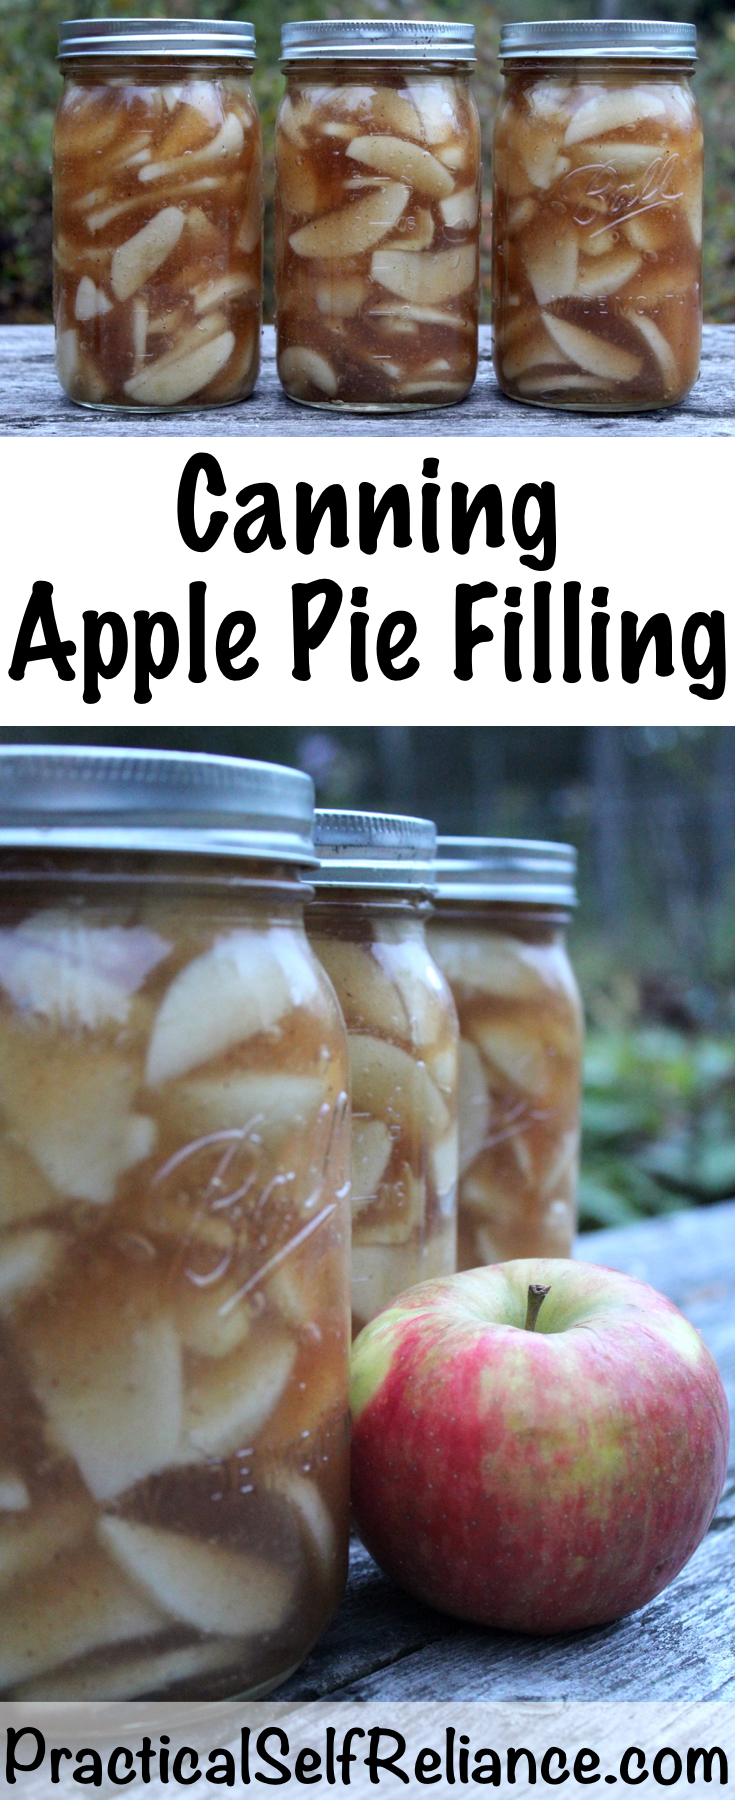 Canning Apple Pie Filling ~ Apple Pie Filling Recipe for Canning